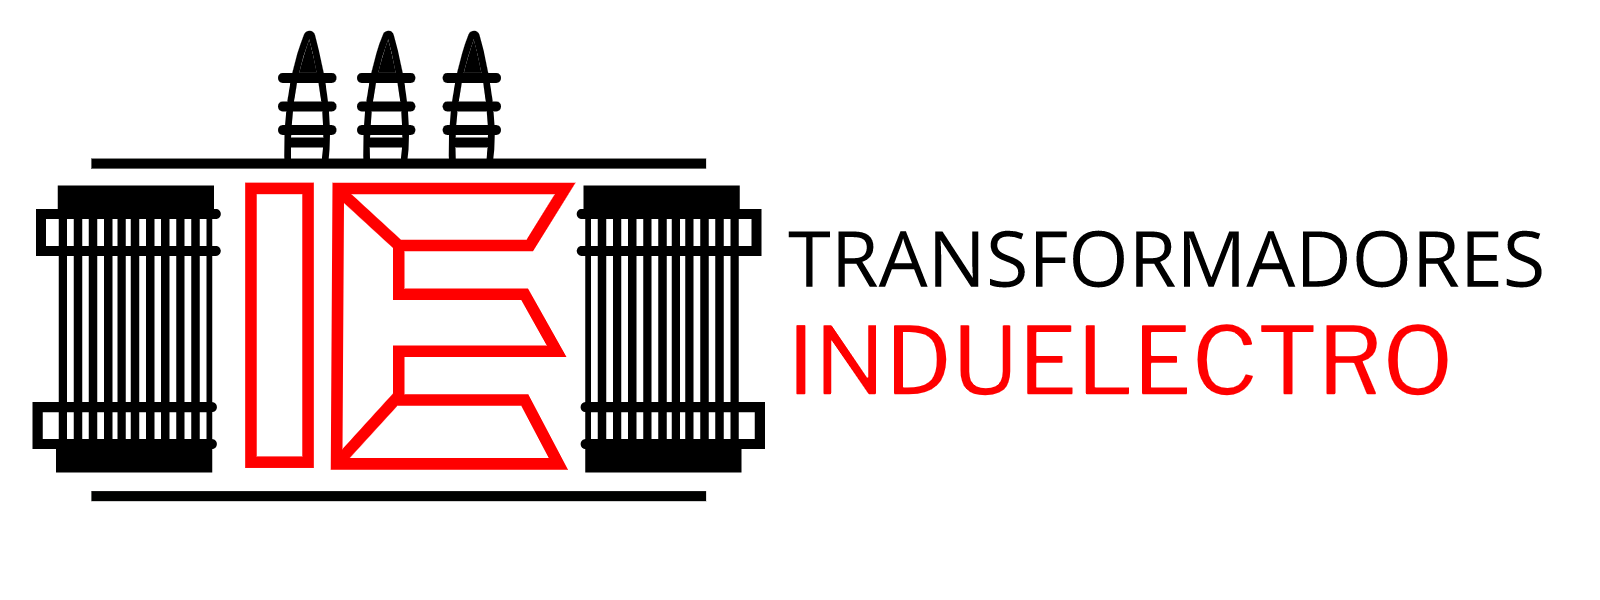 logo_induelectro.png